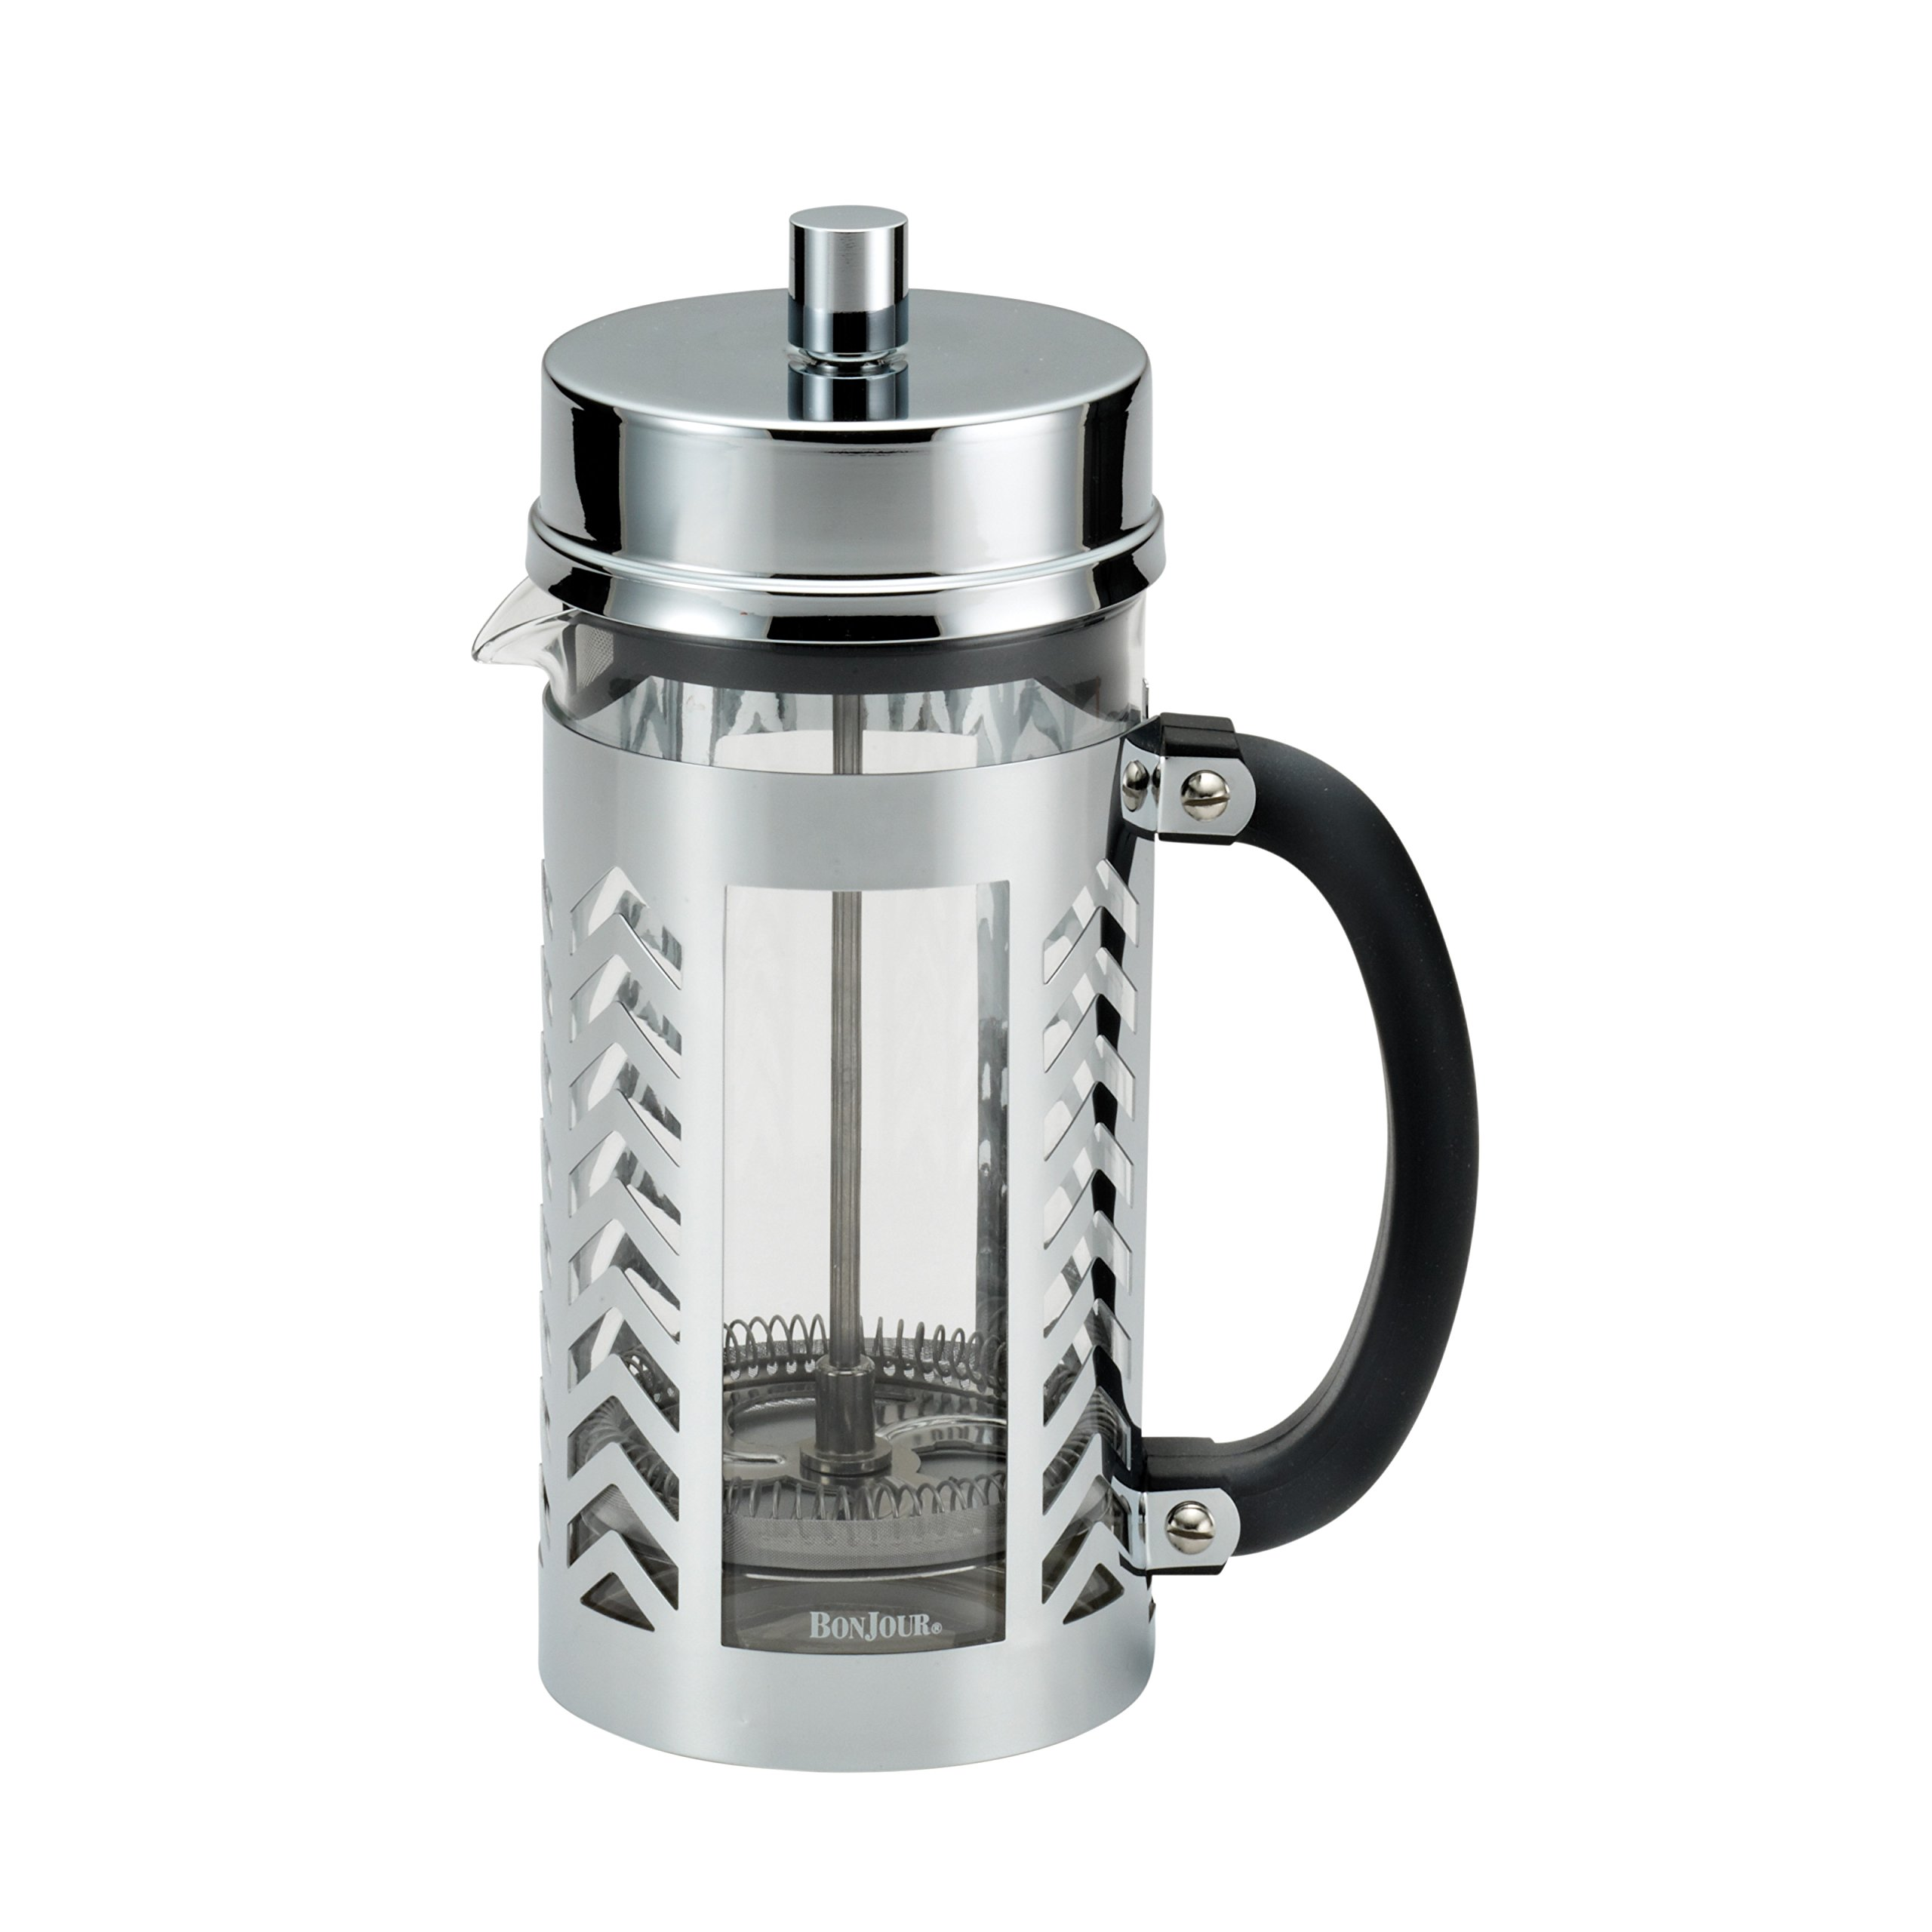 BonJour Coffee Glass and Stainless Steel French Press, 33.8-Ounce, Chevron by BonJour